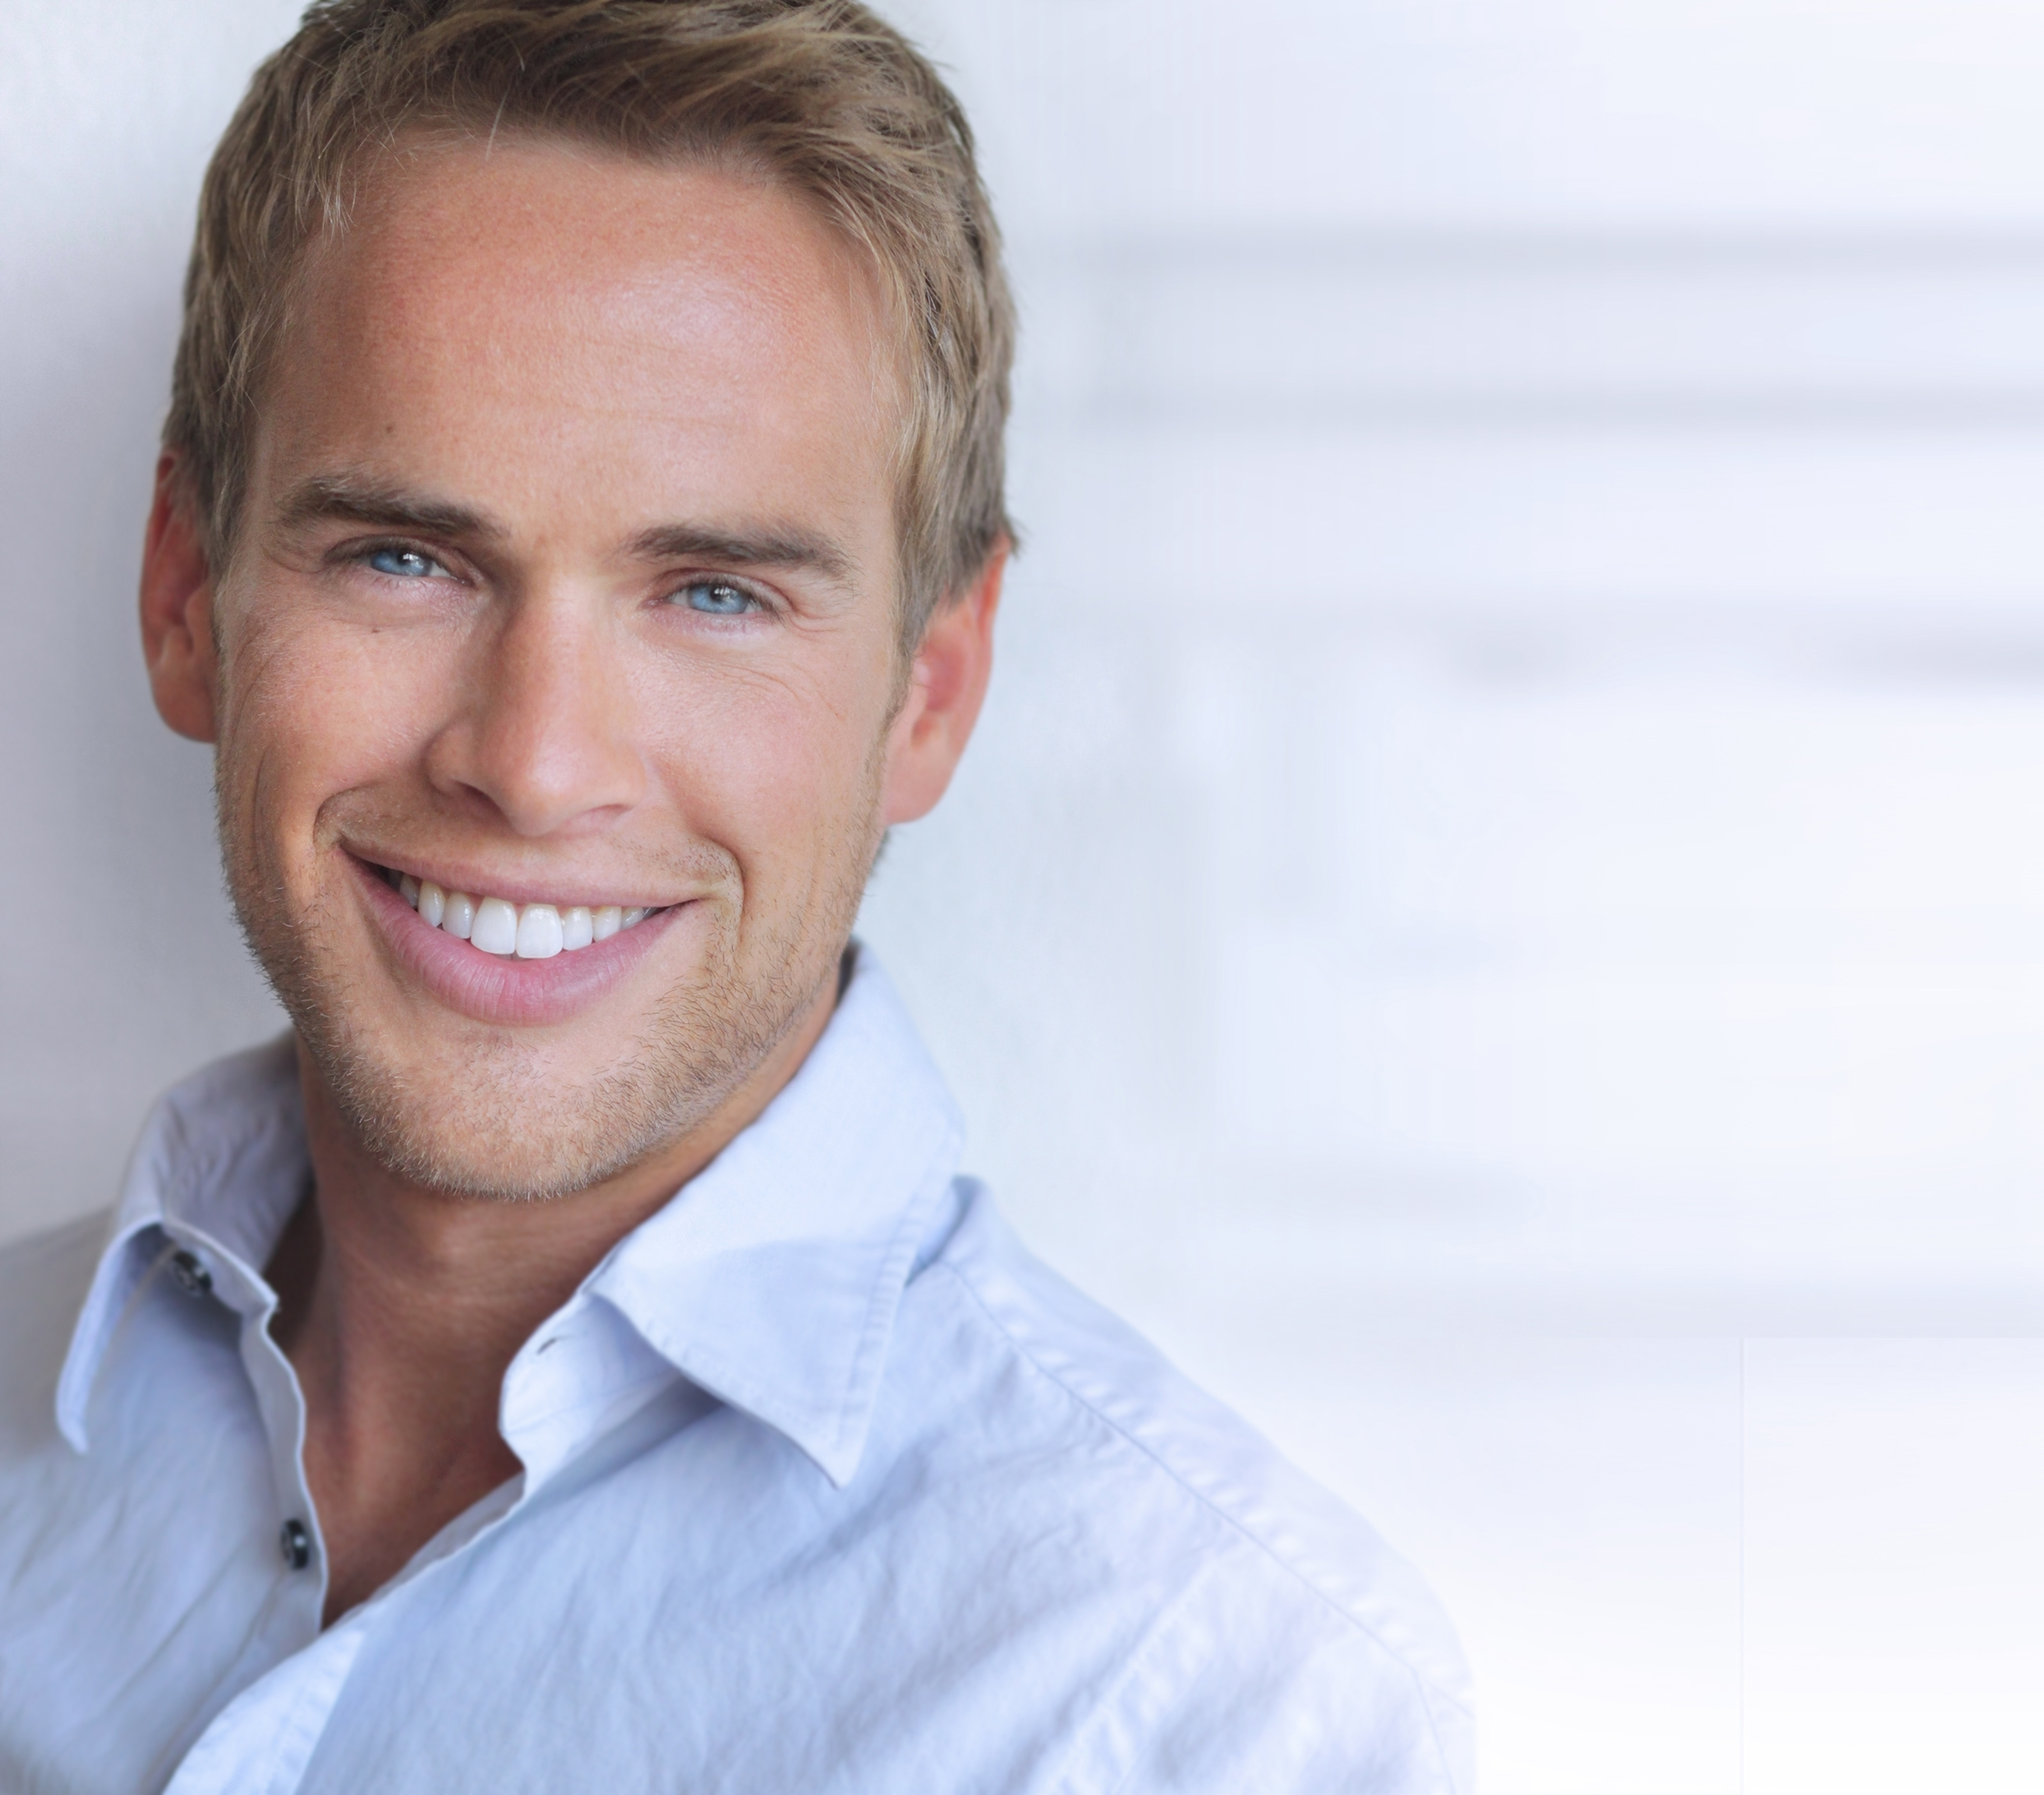 Cosmetic dentistry in Thousand Oaks